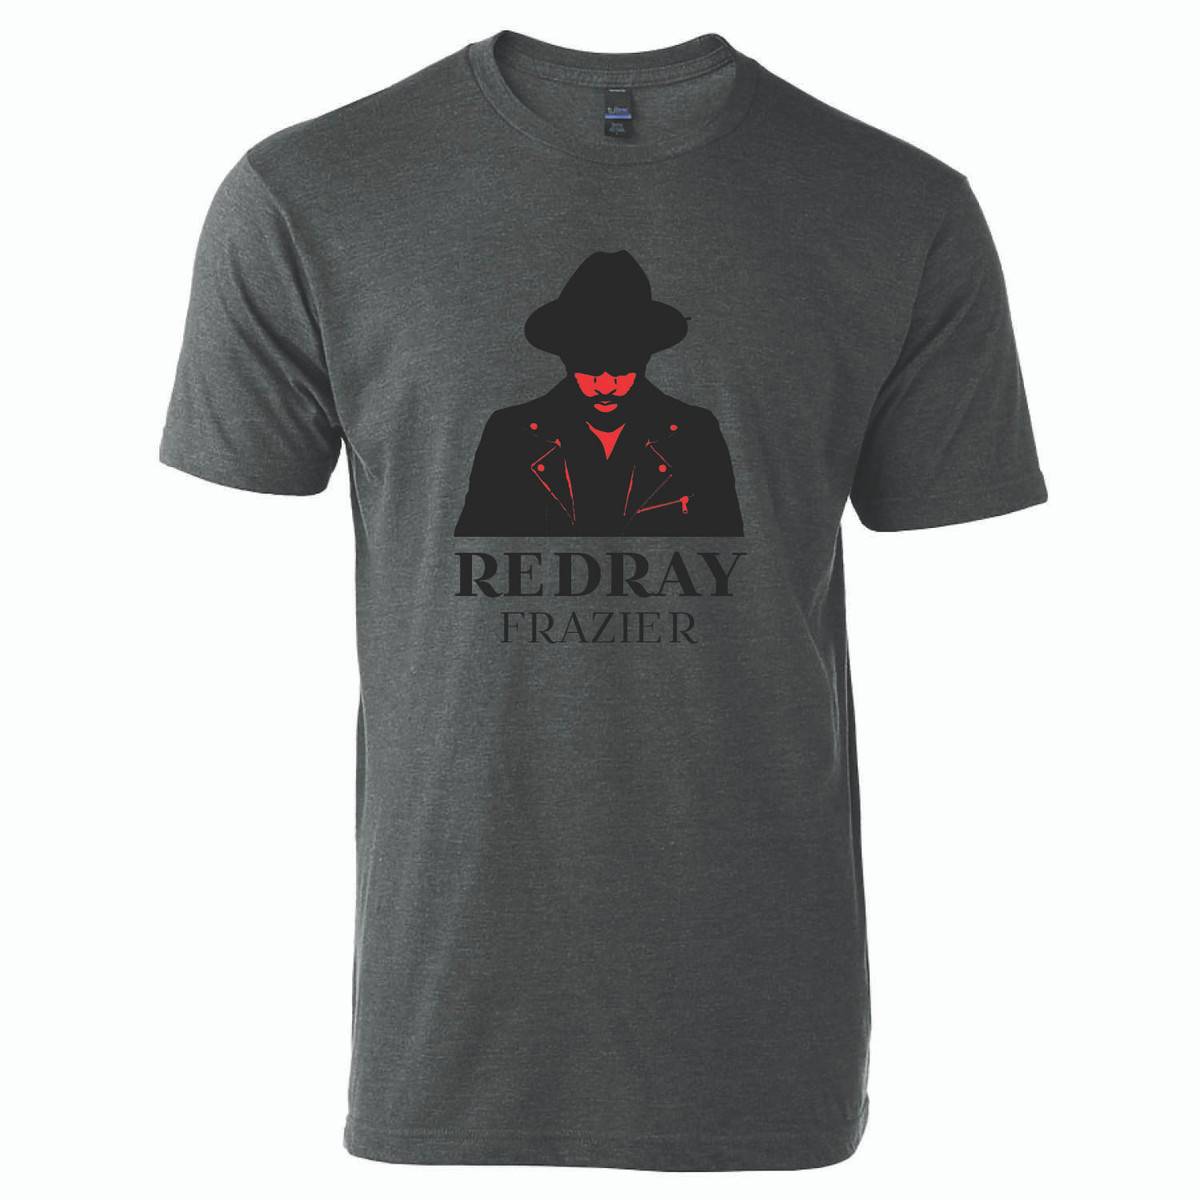 RedRay Frazier Tee - Charcoal